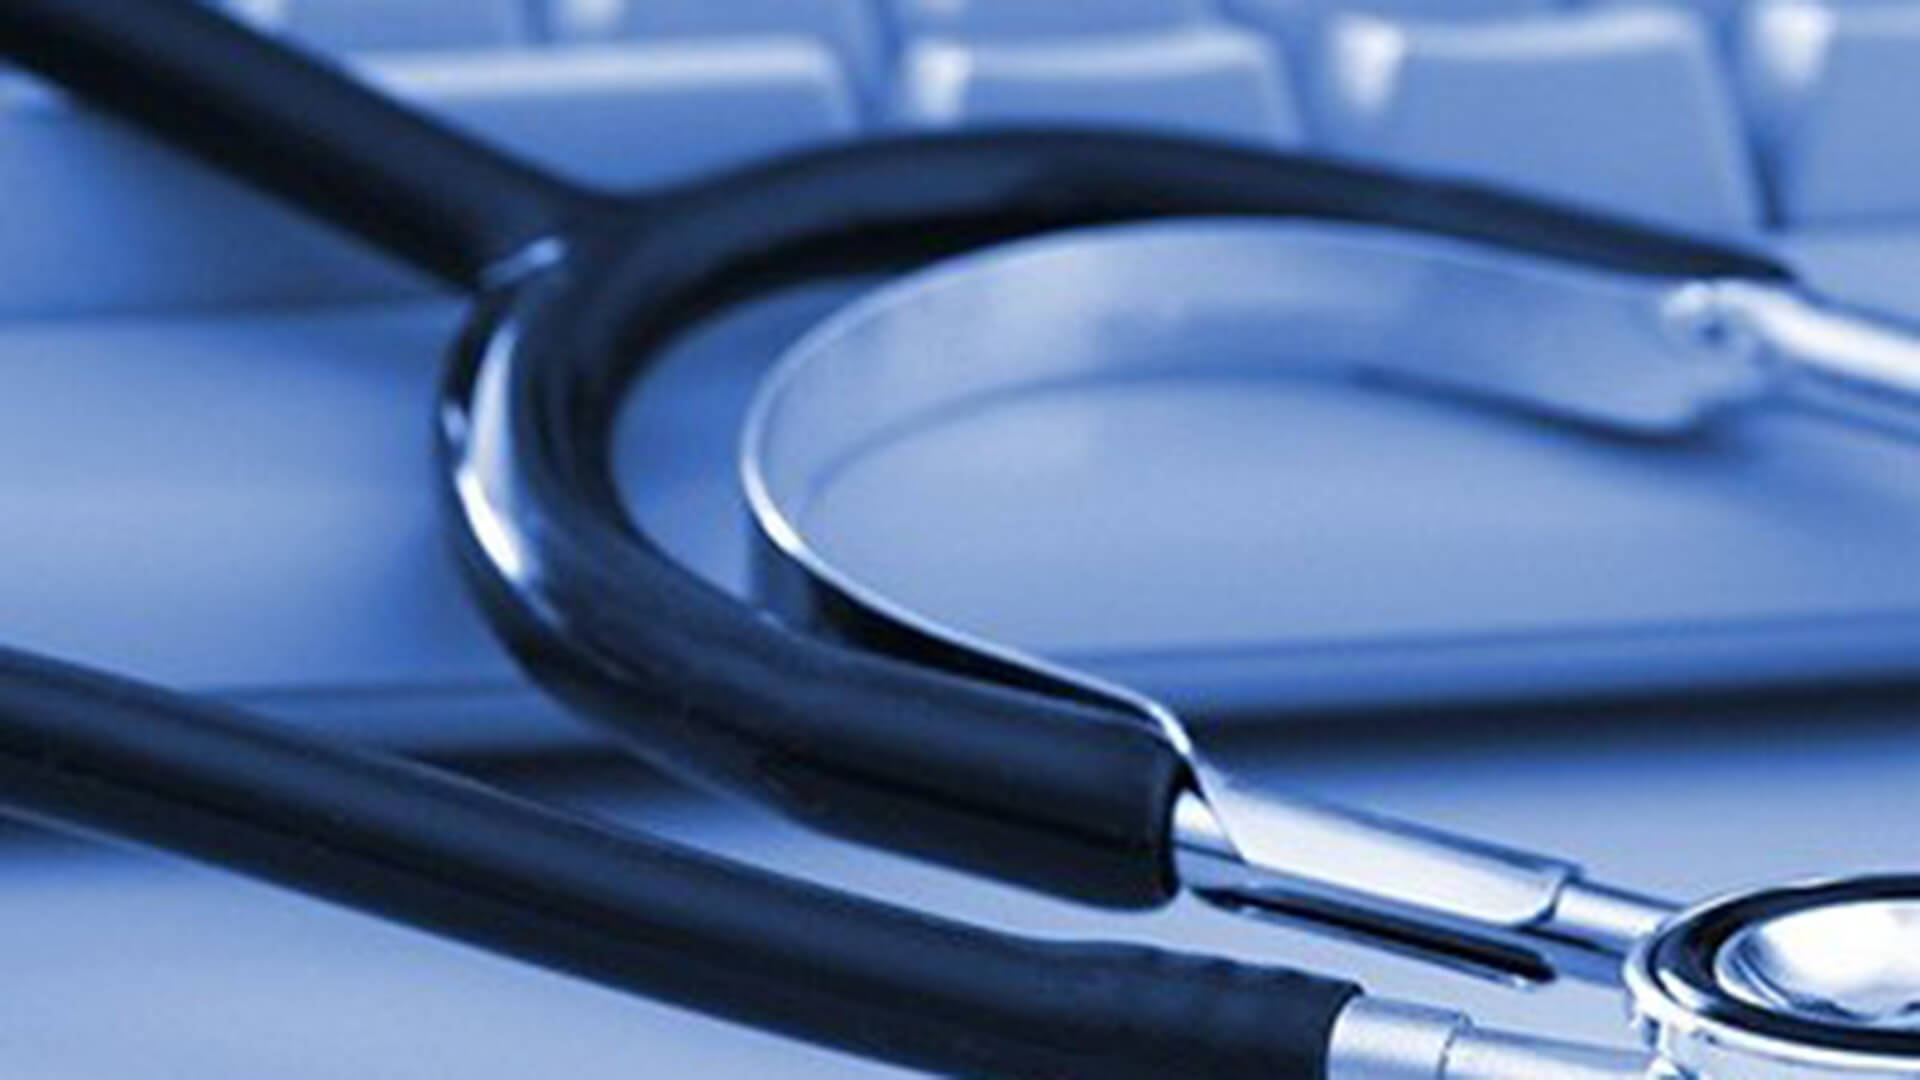 Stethoscope on a keyboard